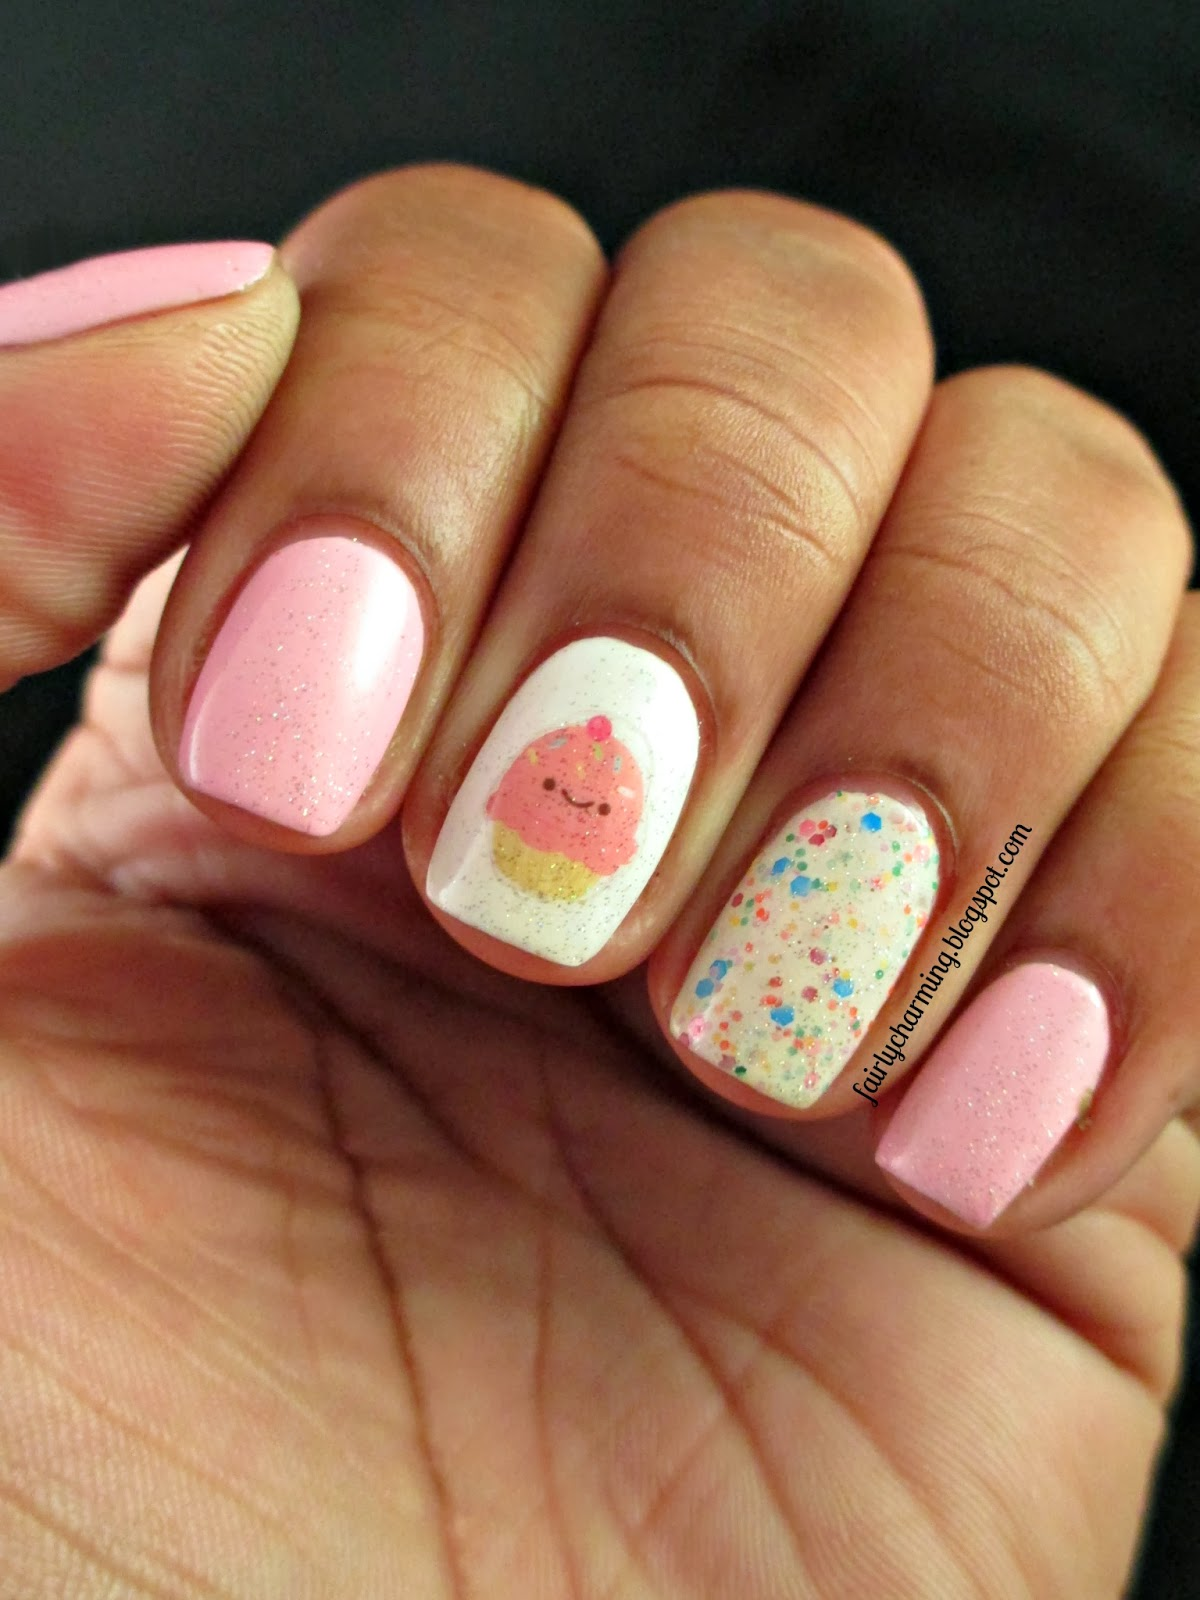 Cute nail designs for birthday happy birthday nail art ideas view images birthday cupcake all in one nails prinsesfo Images